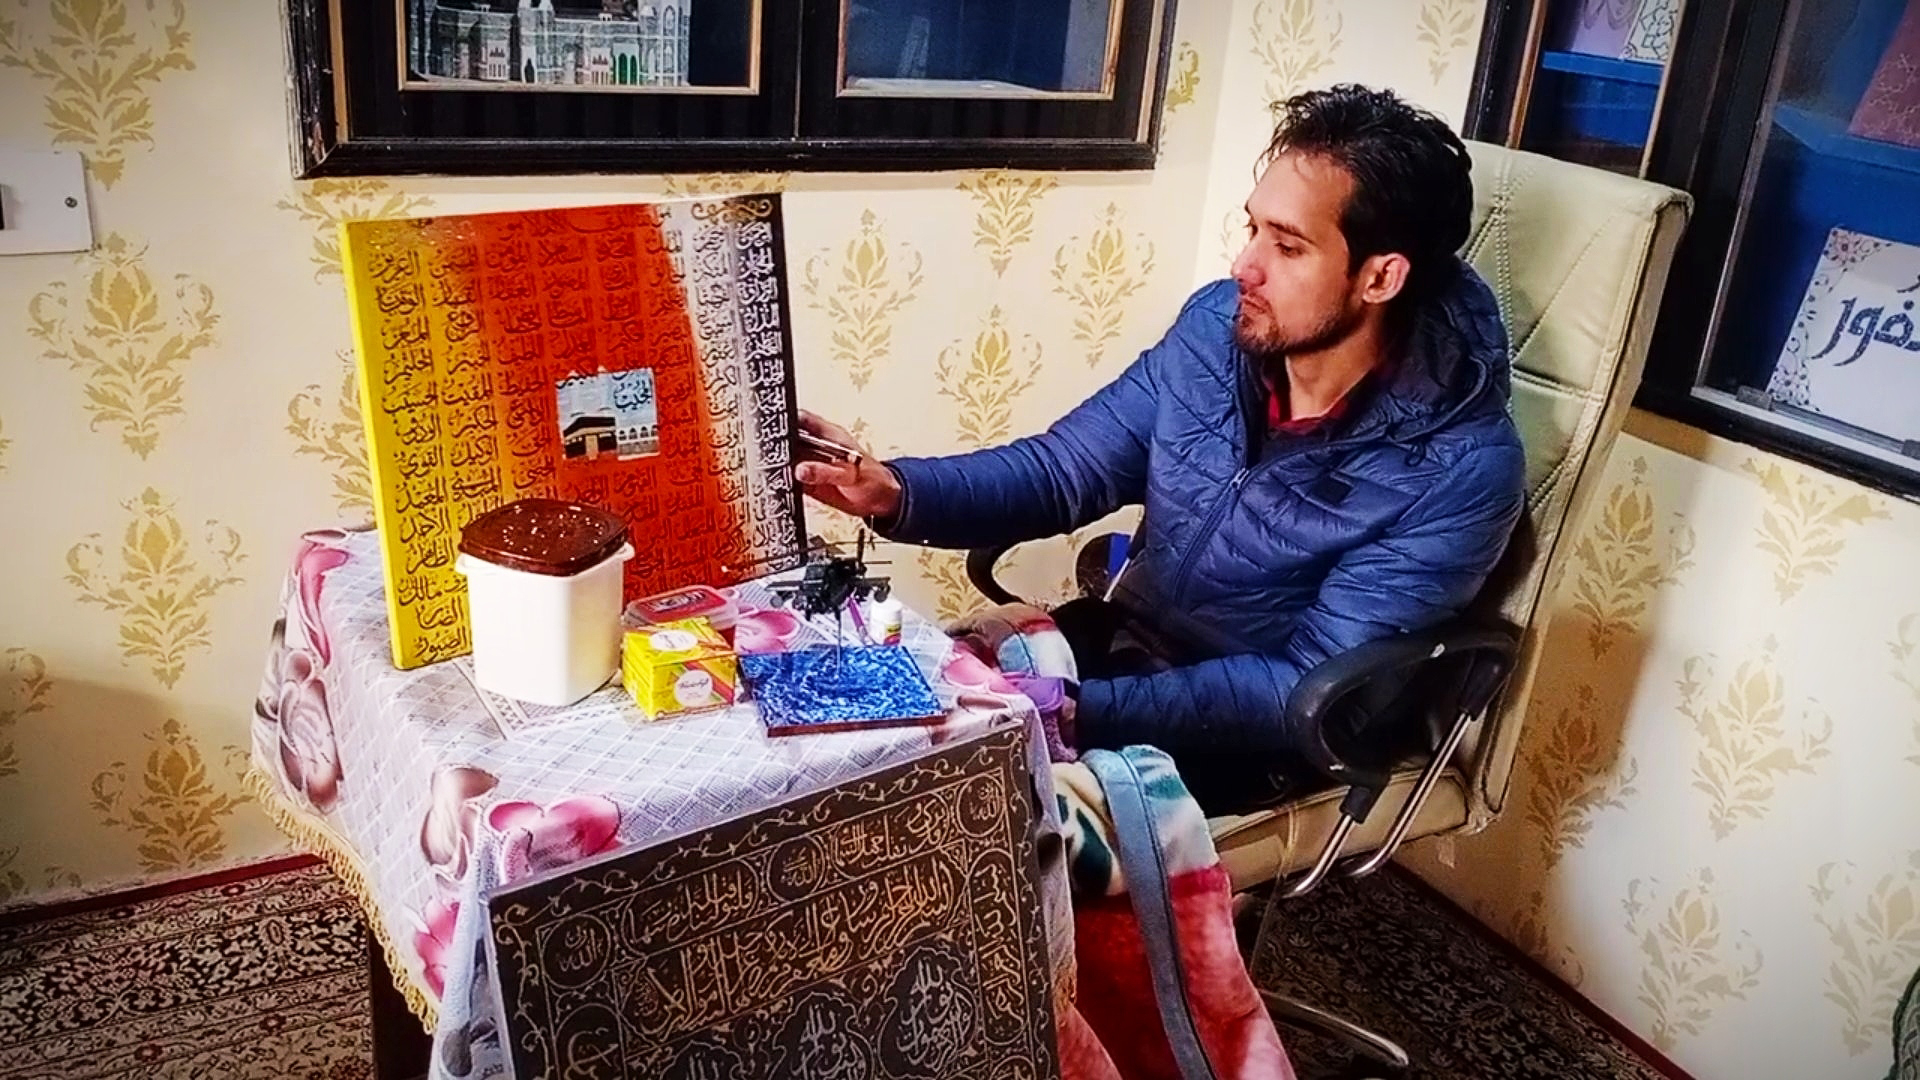 J&K | Paraplegic by an accident didn't kill hopes of Jibran, a budding artist From Pulwama